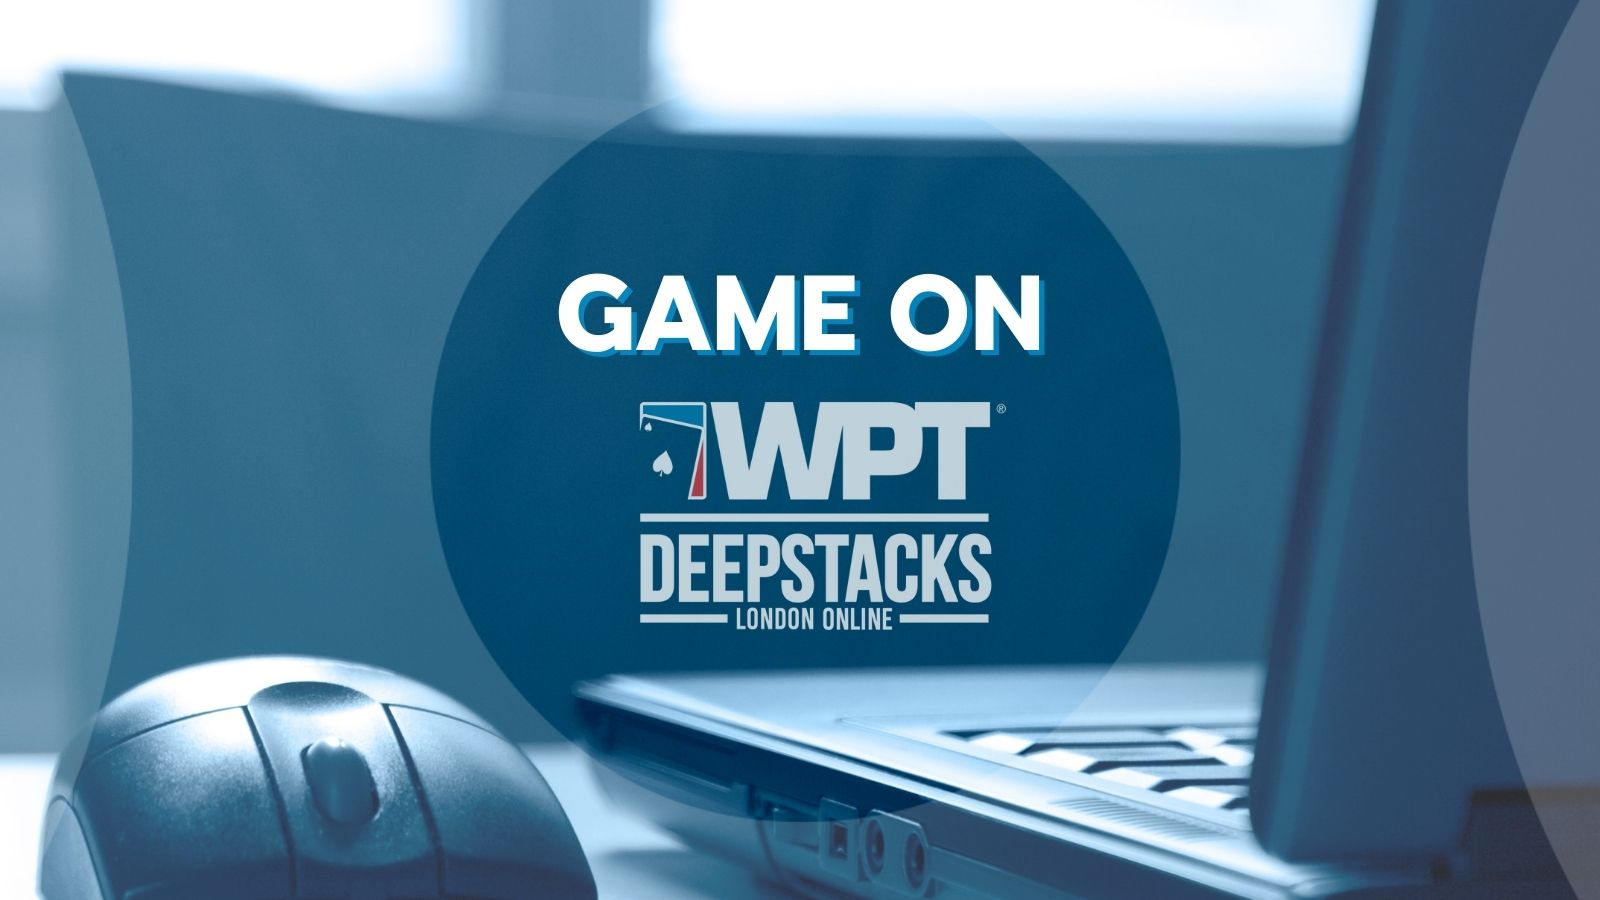 On Sunday, the first-ever WPTDeepStacks London Online series kicked off on 888poker.